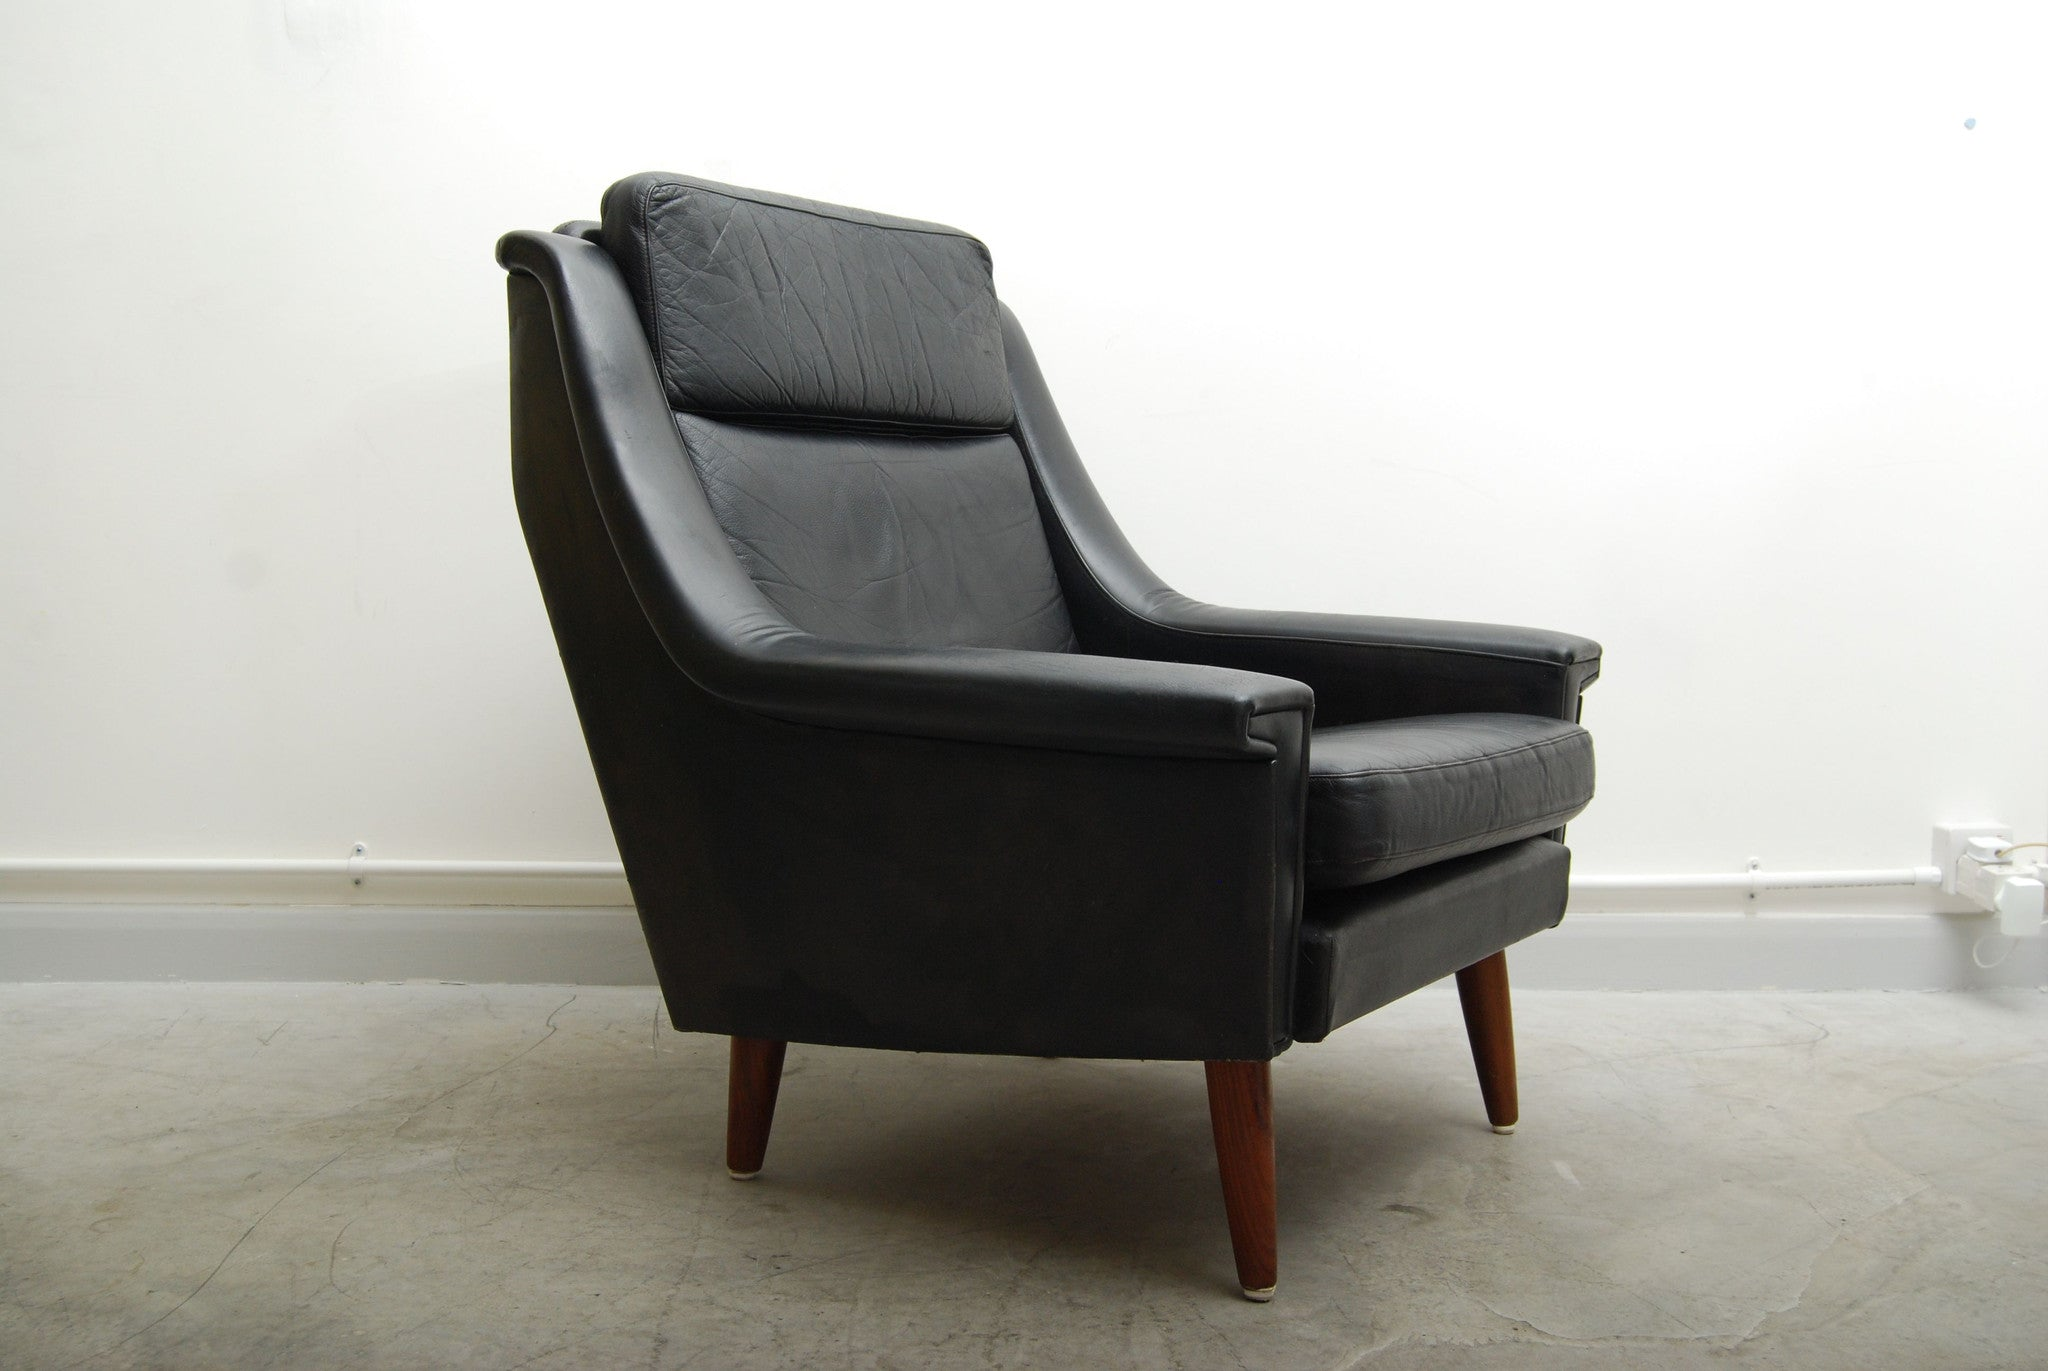 New price: Black leather lounge chair